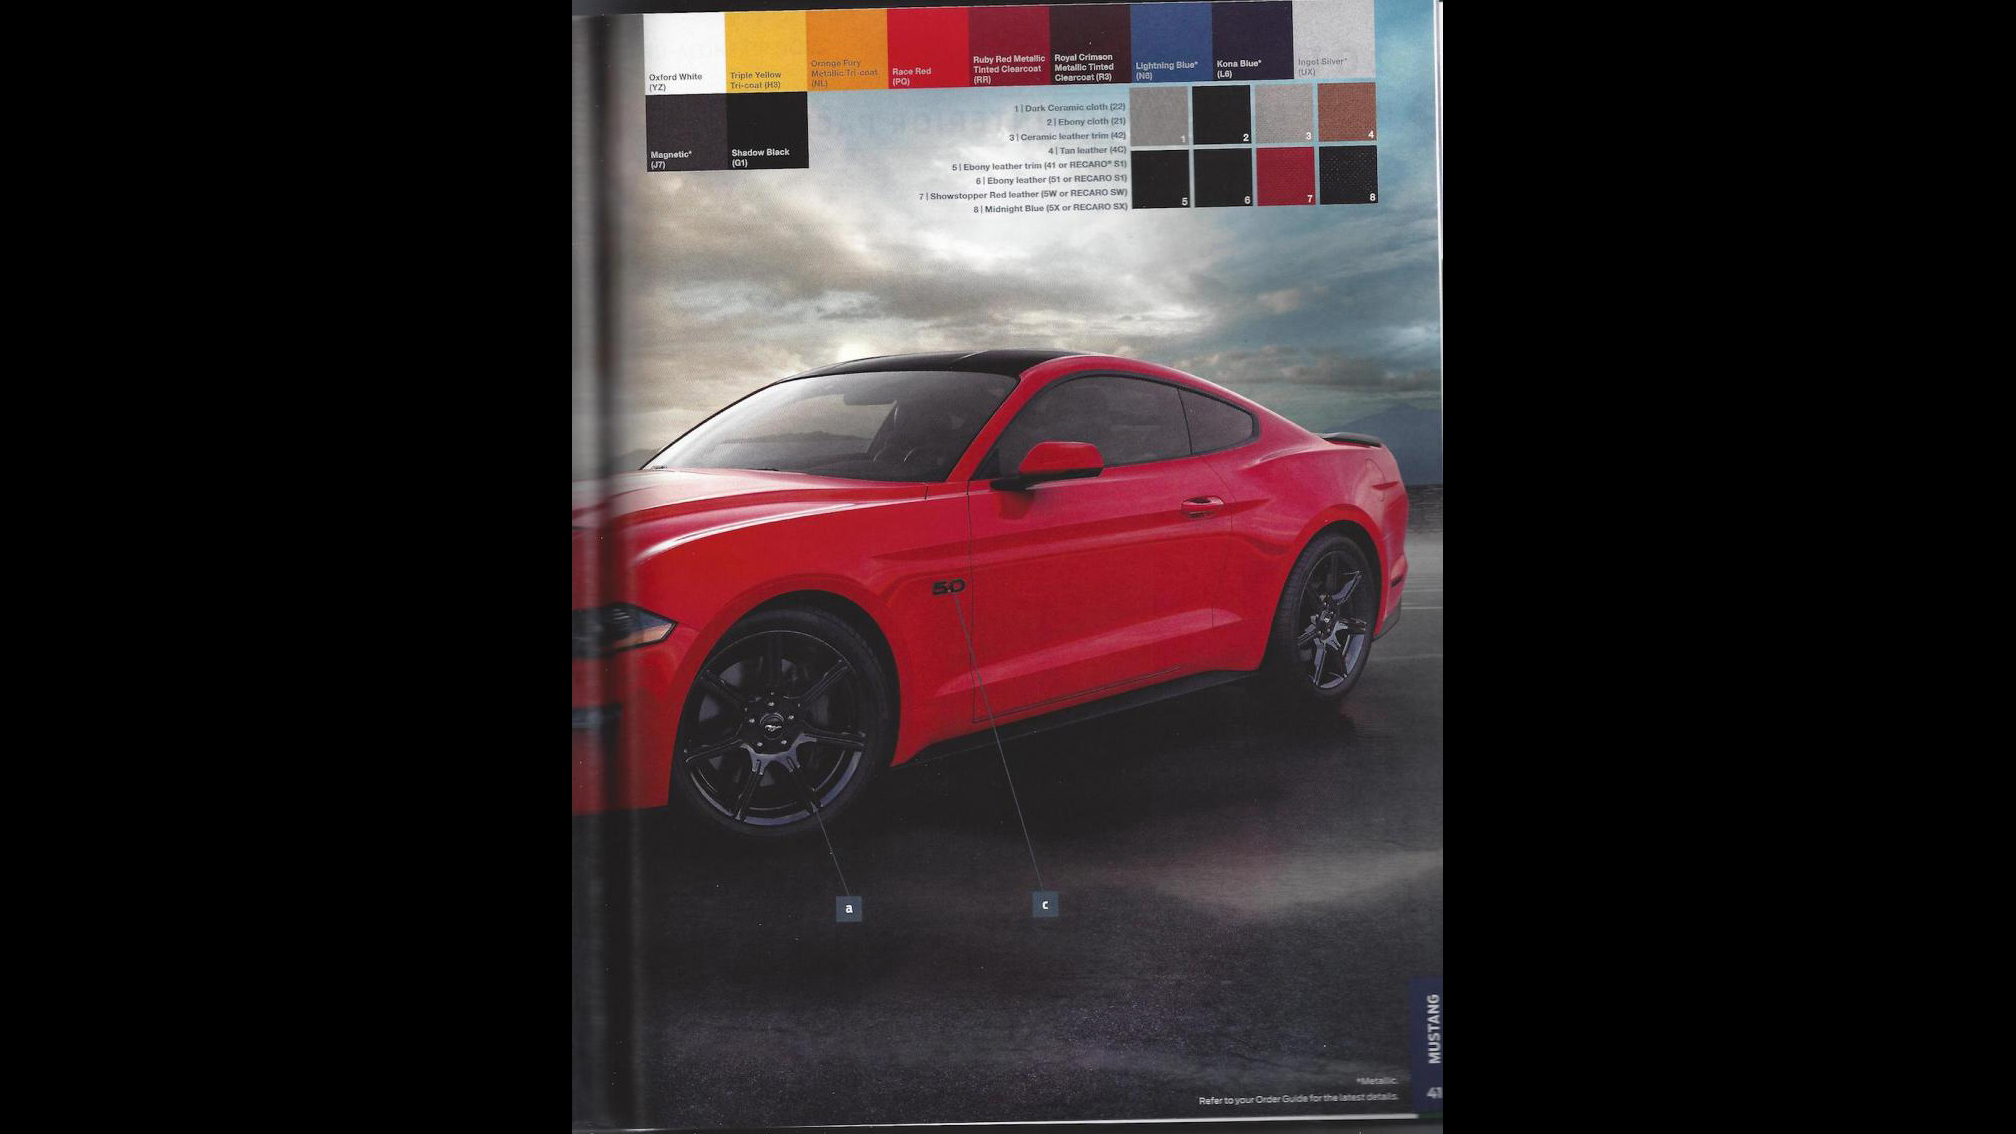 Ford Mustang 2018 Order Guide (5)